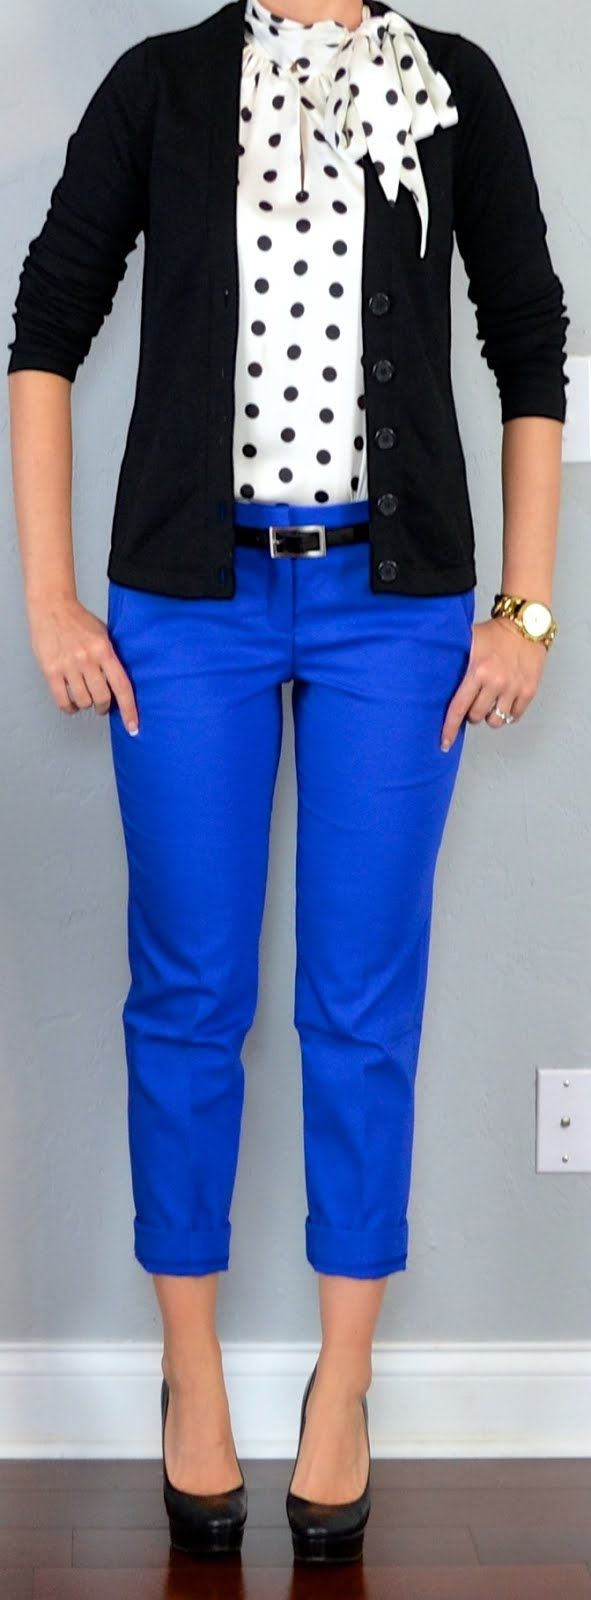 1000  ideas about Royal Blue Pants on Pinterest | Blue Pants ...